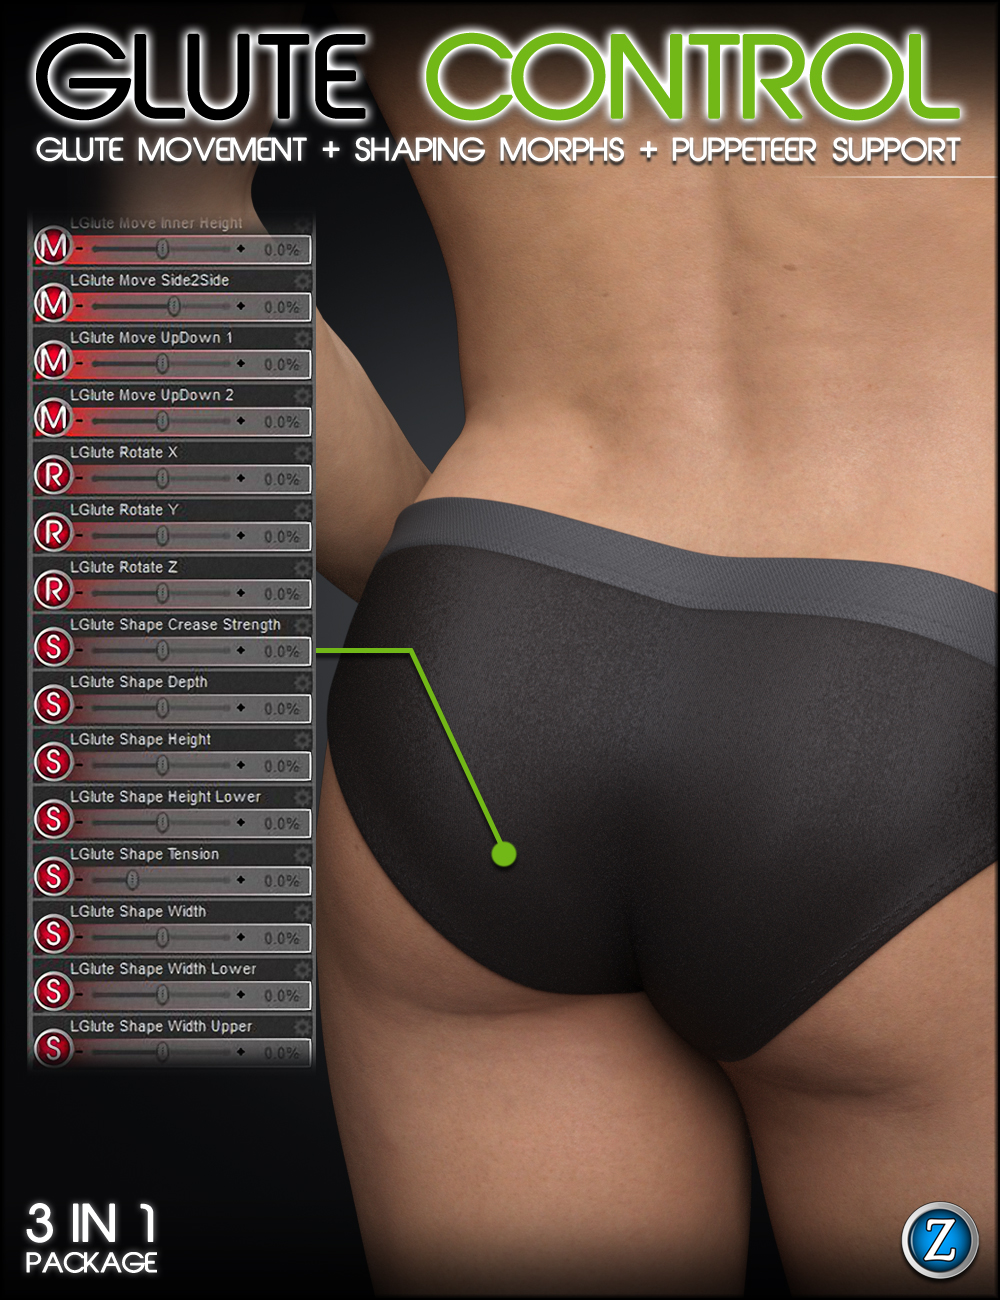 Glute Control for Genesis 3 and 8 Male(s) by: Zev0, 3D Models by Daz 3D